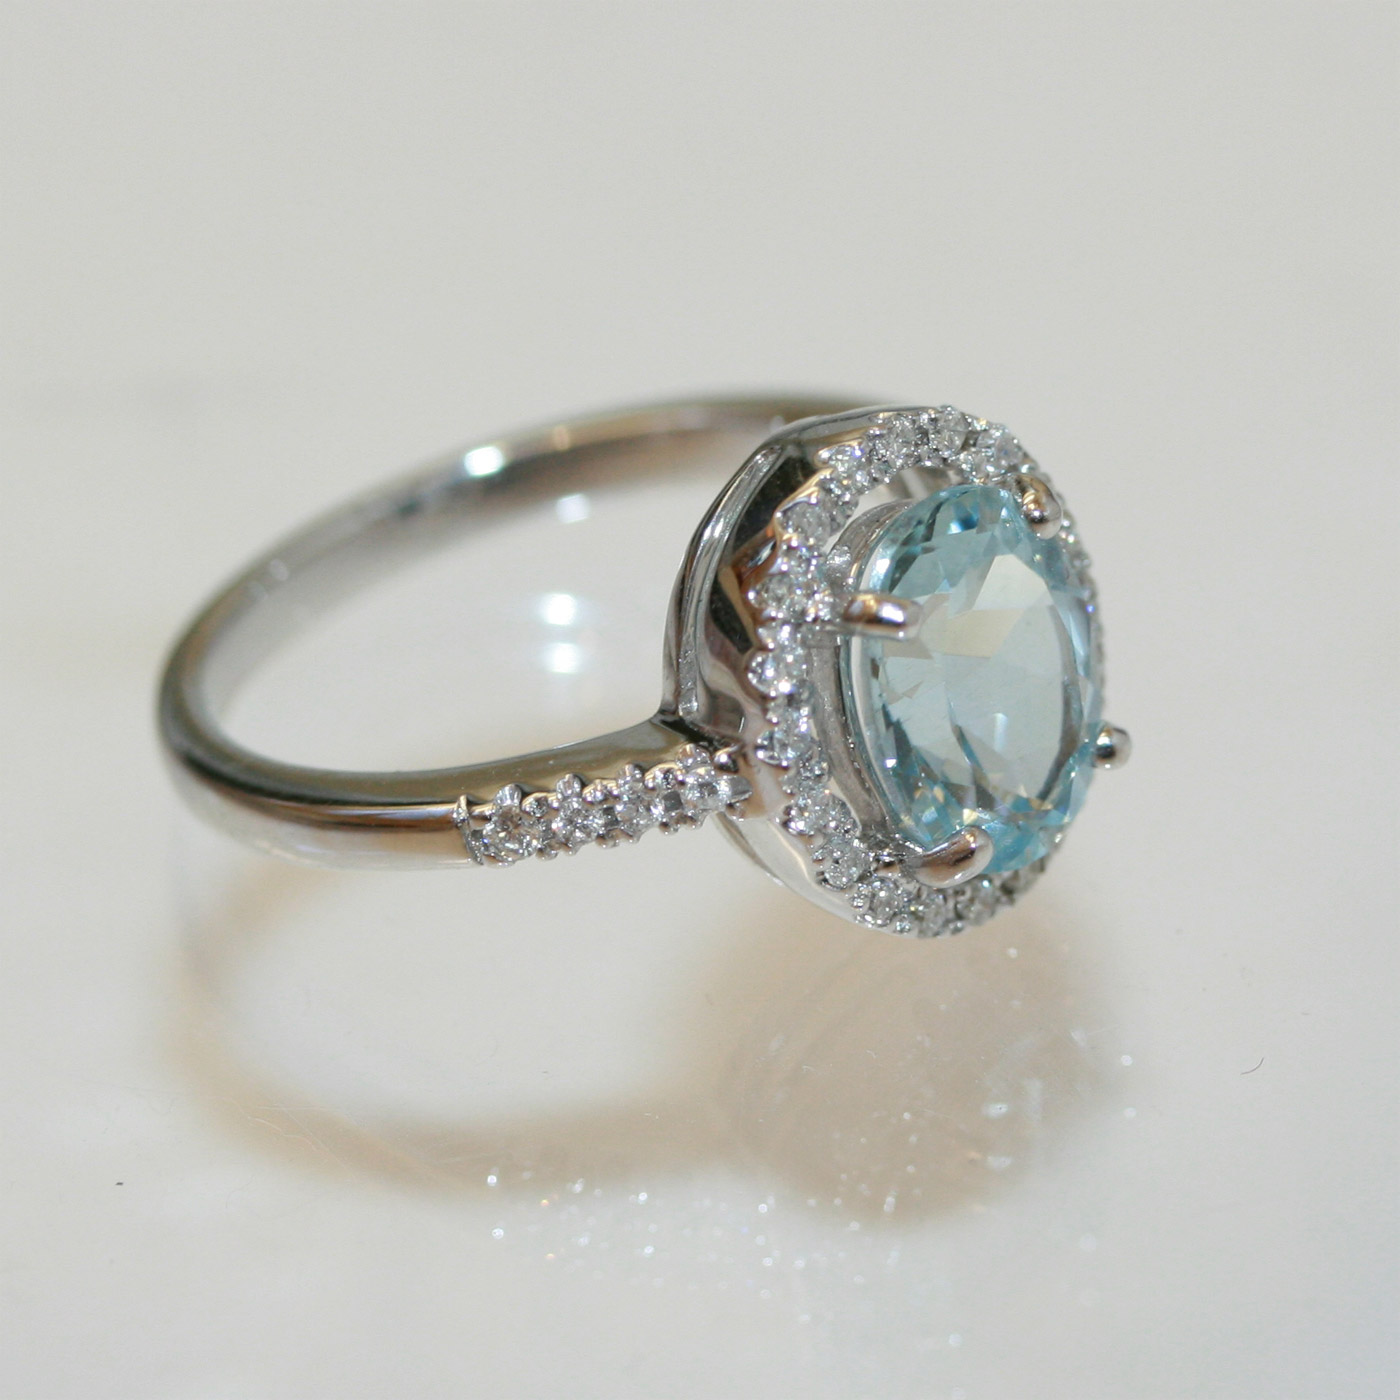 Buy 18ct Aquamarine And Diamond Ring Sold Items Sold